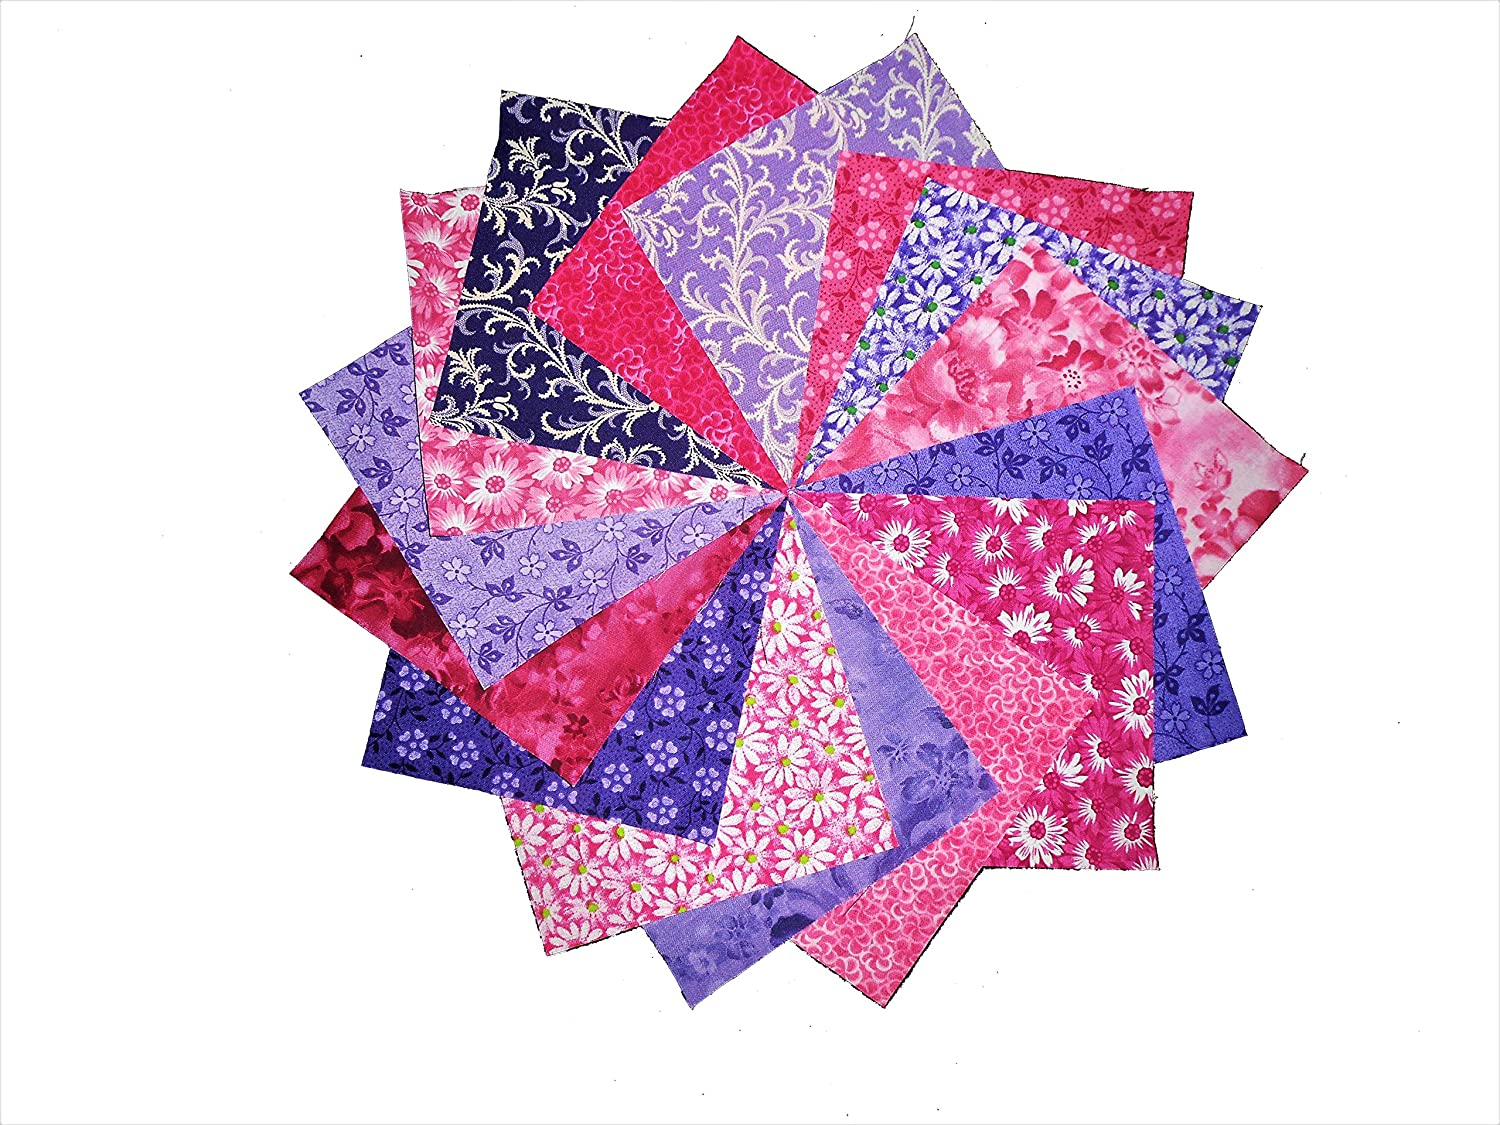 1 OF EACH 15 10X10 INCH LAYER CAKE PURPLE /& PINK 15 DIFFERENT